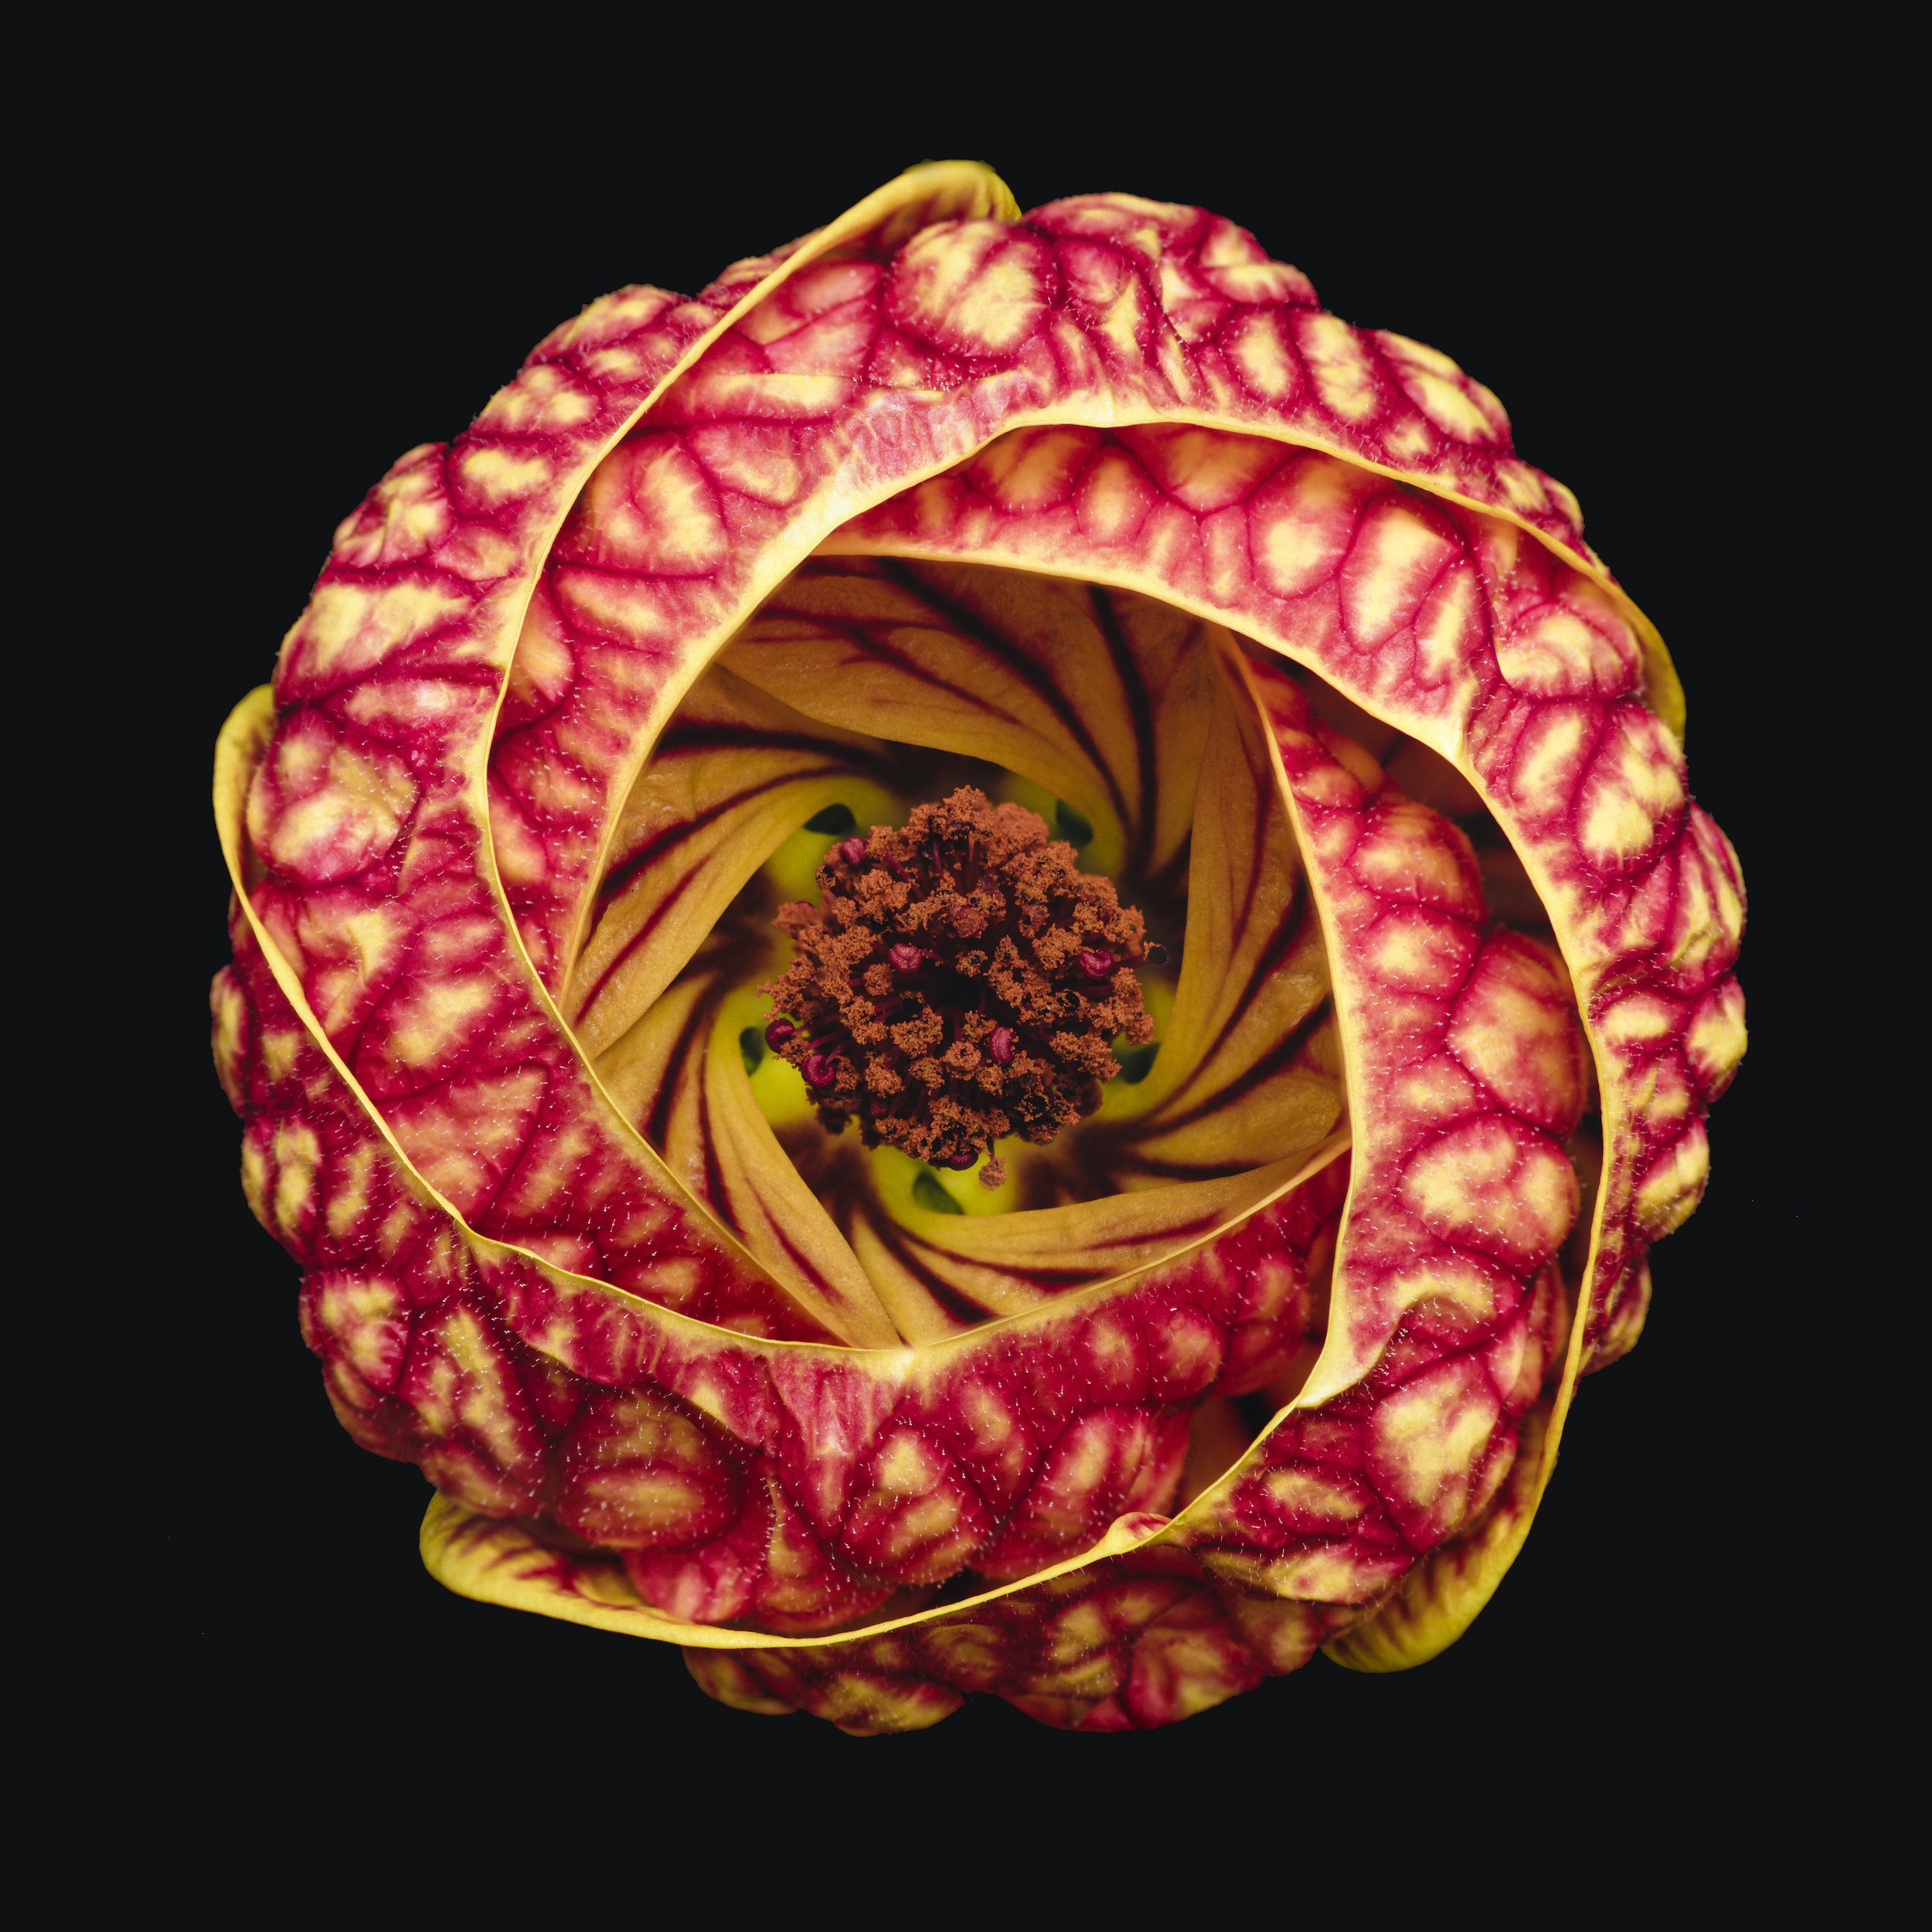 A flower is photographed with crystal-clarity from above, you can see a deep yellow interior and red/yellow patterned petals